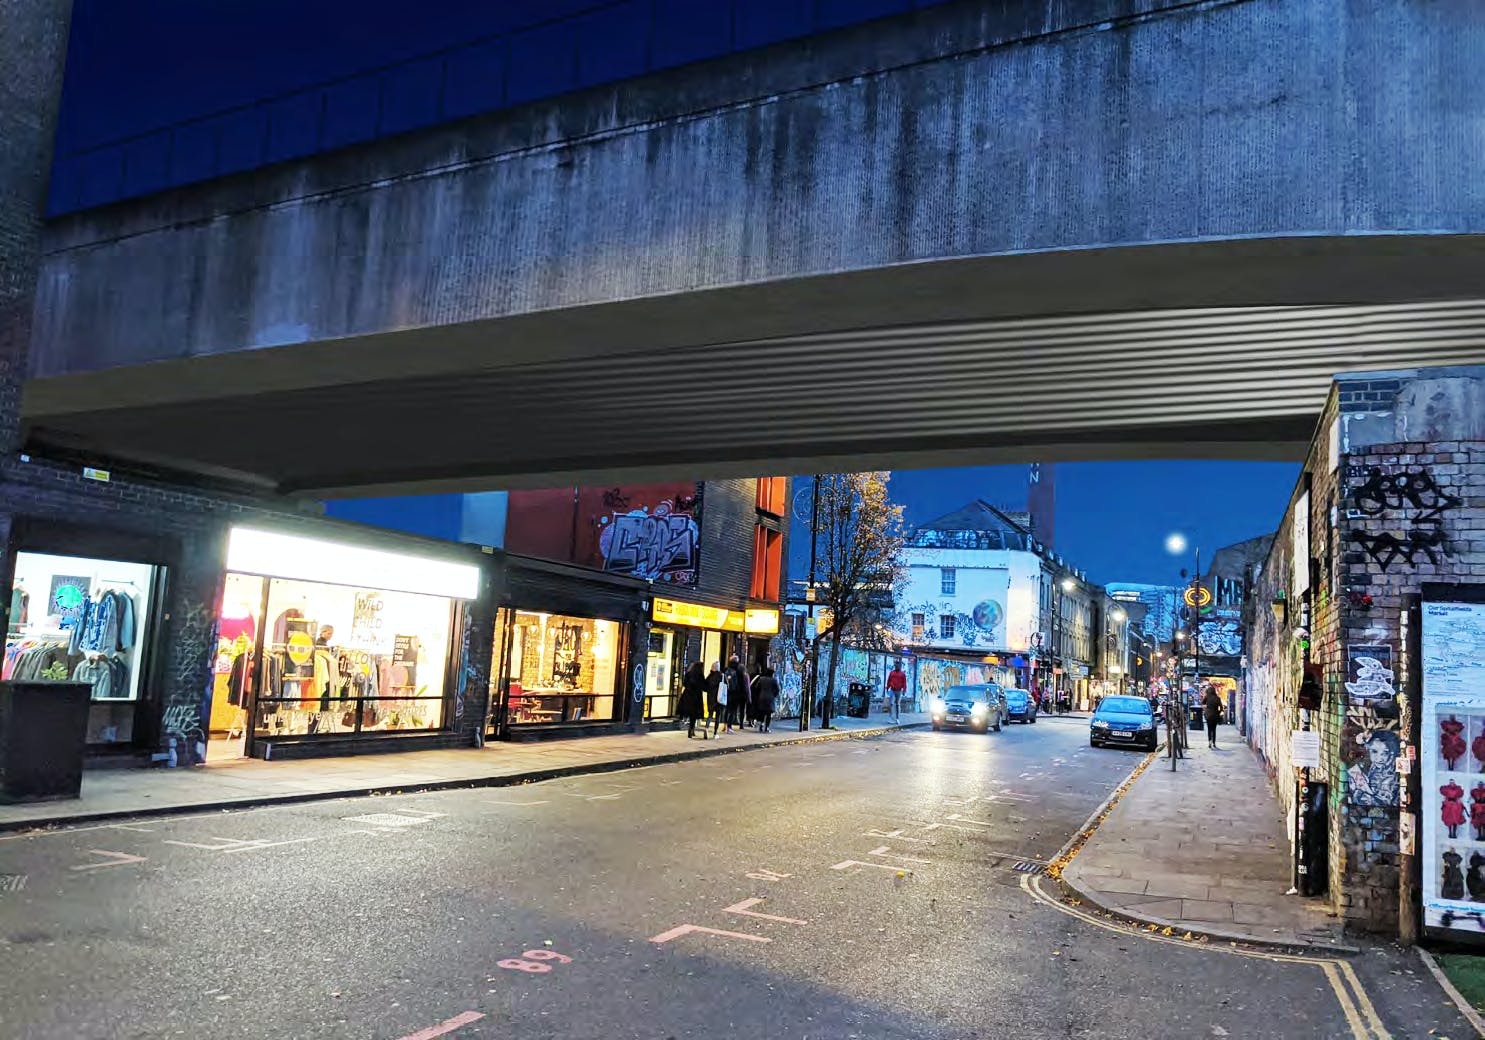 Improved lighting around the Overground bridge could enhance safety and improve the look of the area